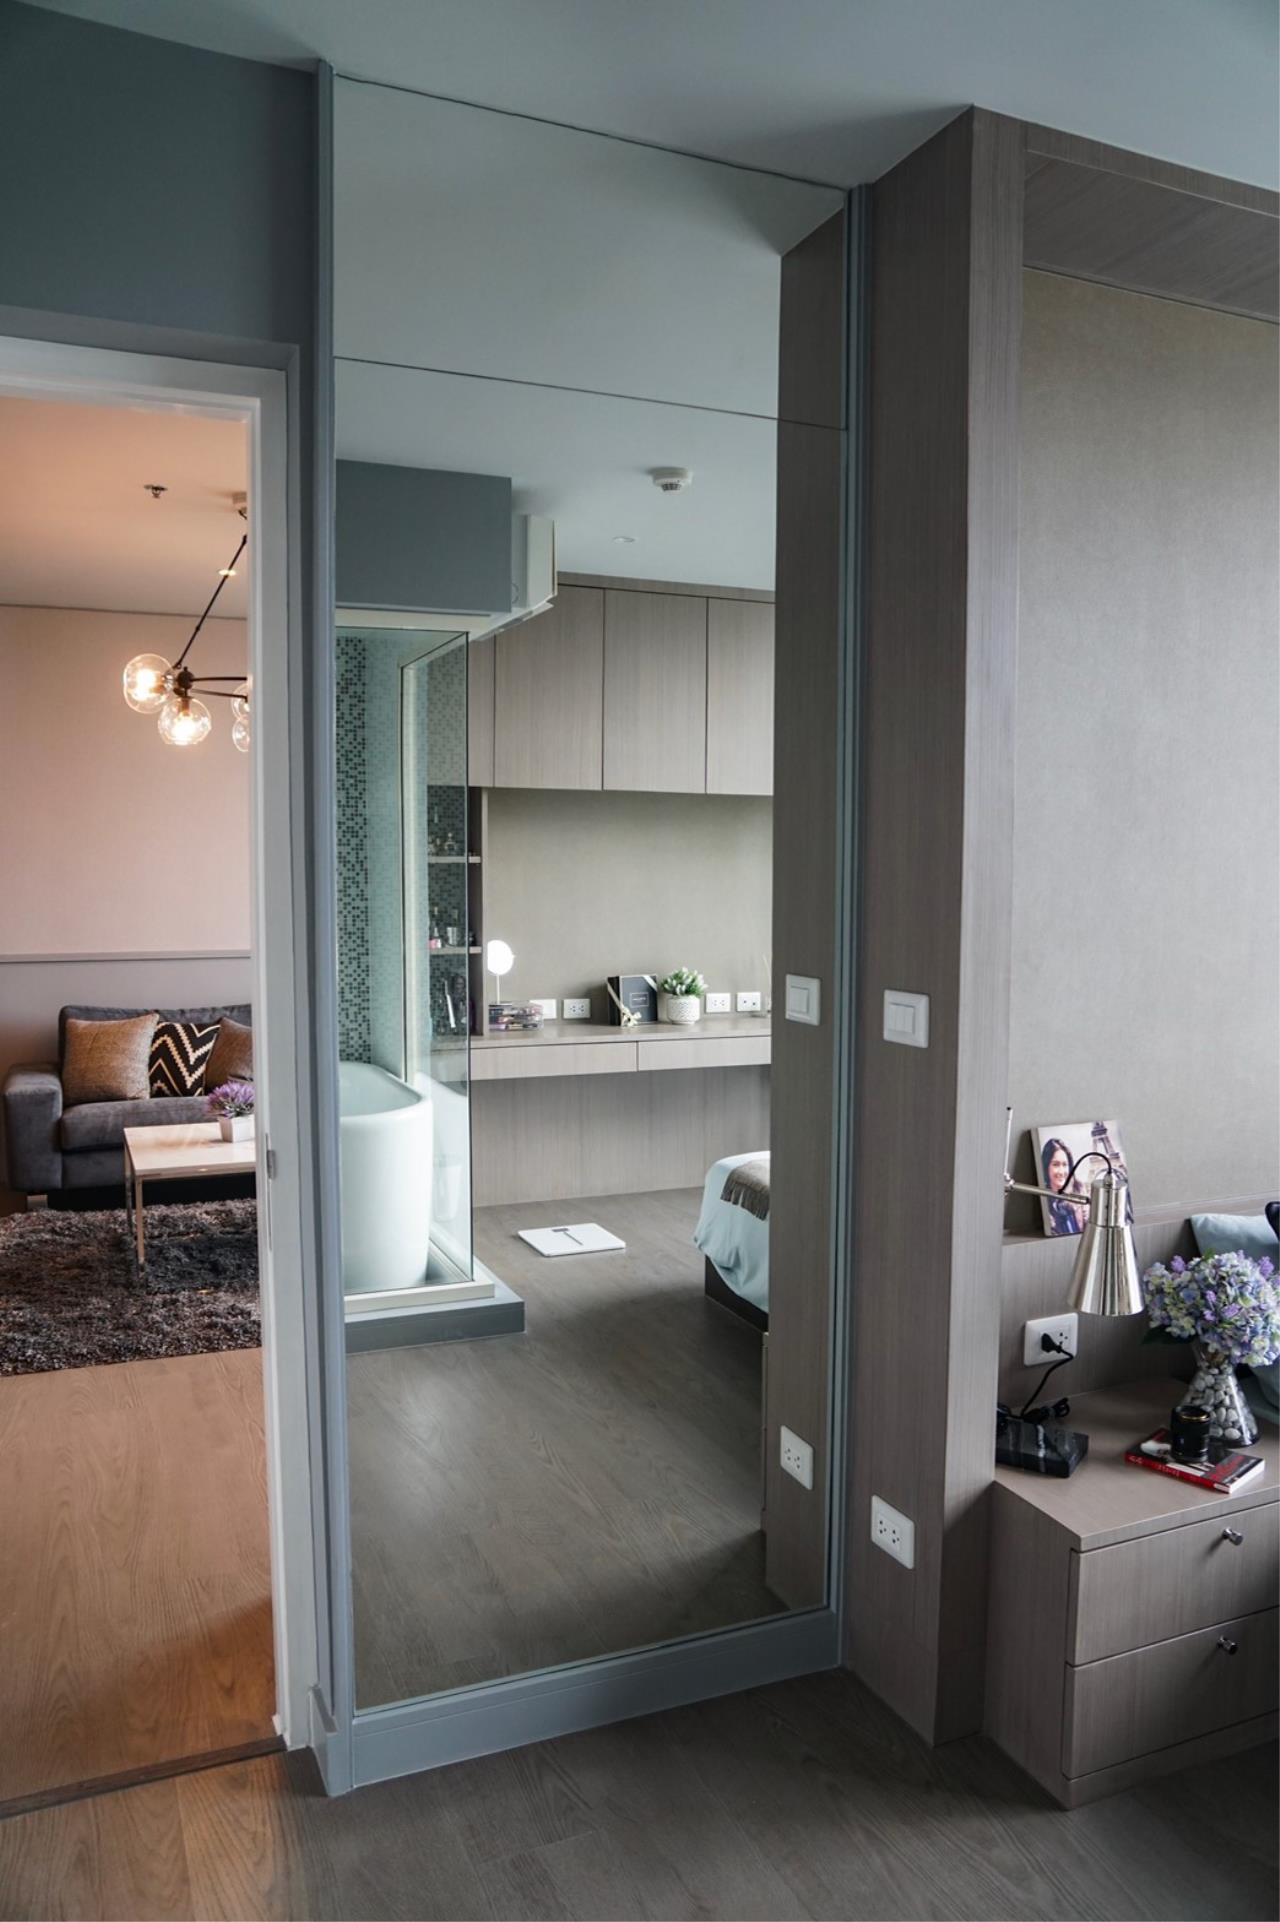 Su Agent Co.,Ltd Agency's BS042 Aspace ID Asoke Dindaeng 2 Bedrooms for Sale 12.5 M 5